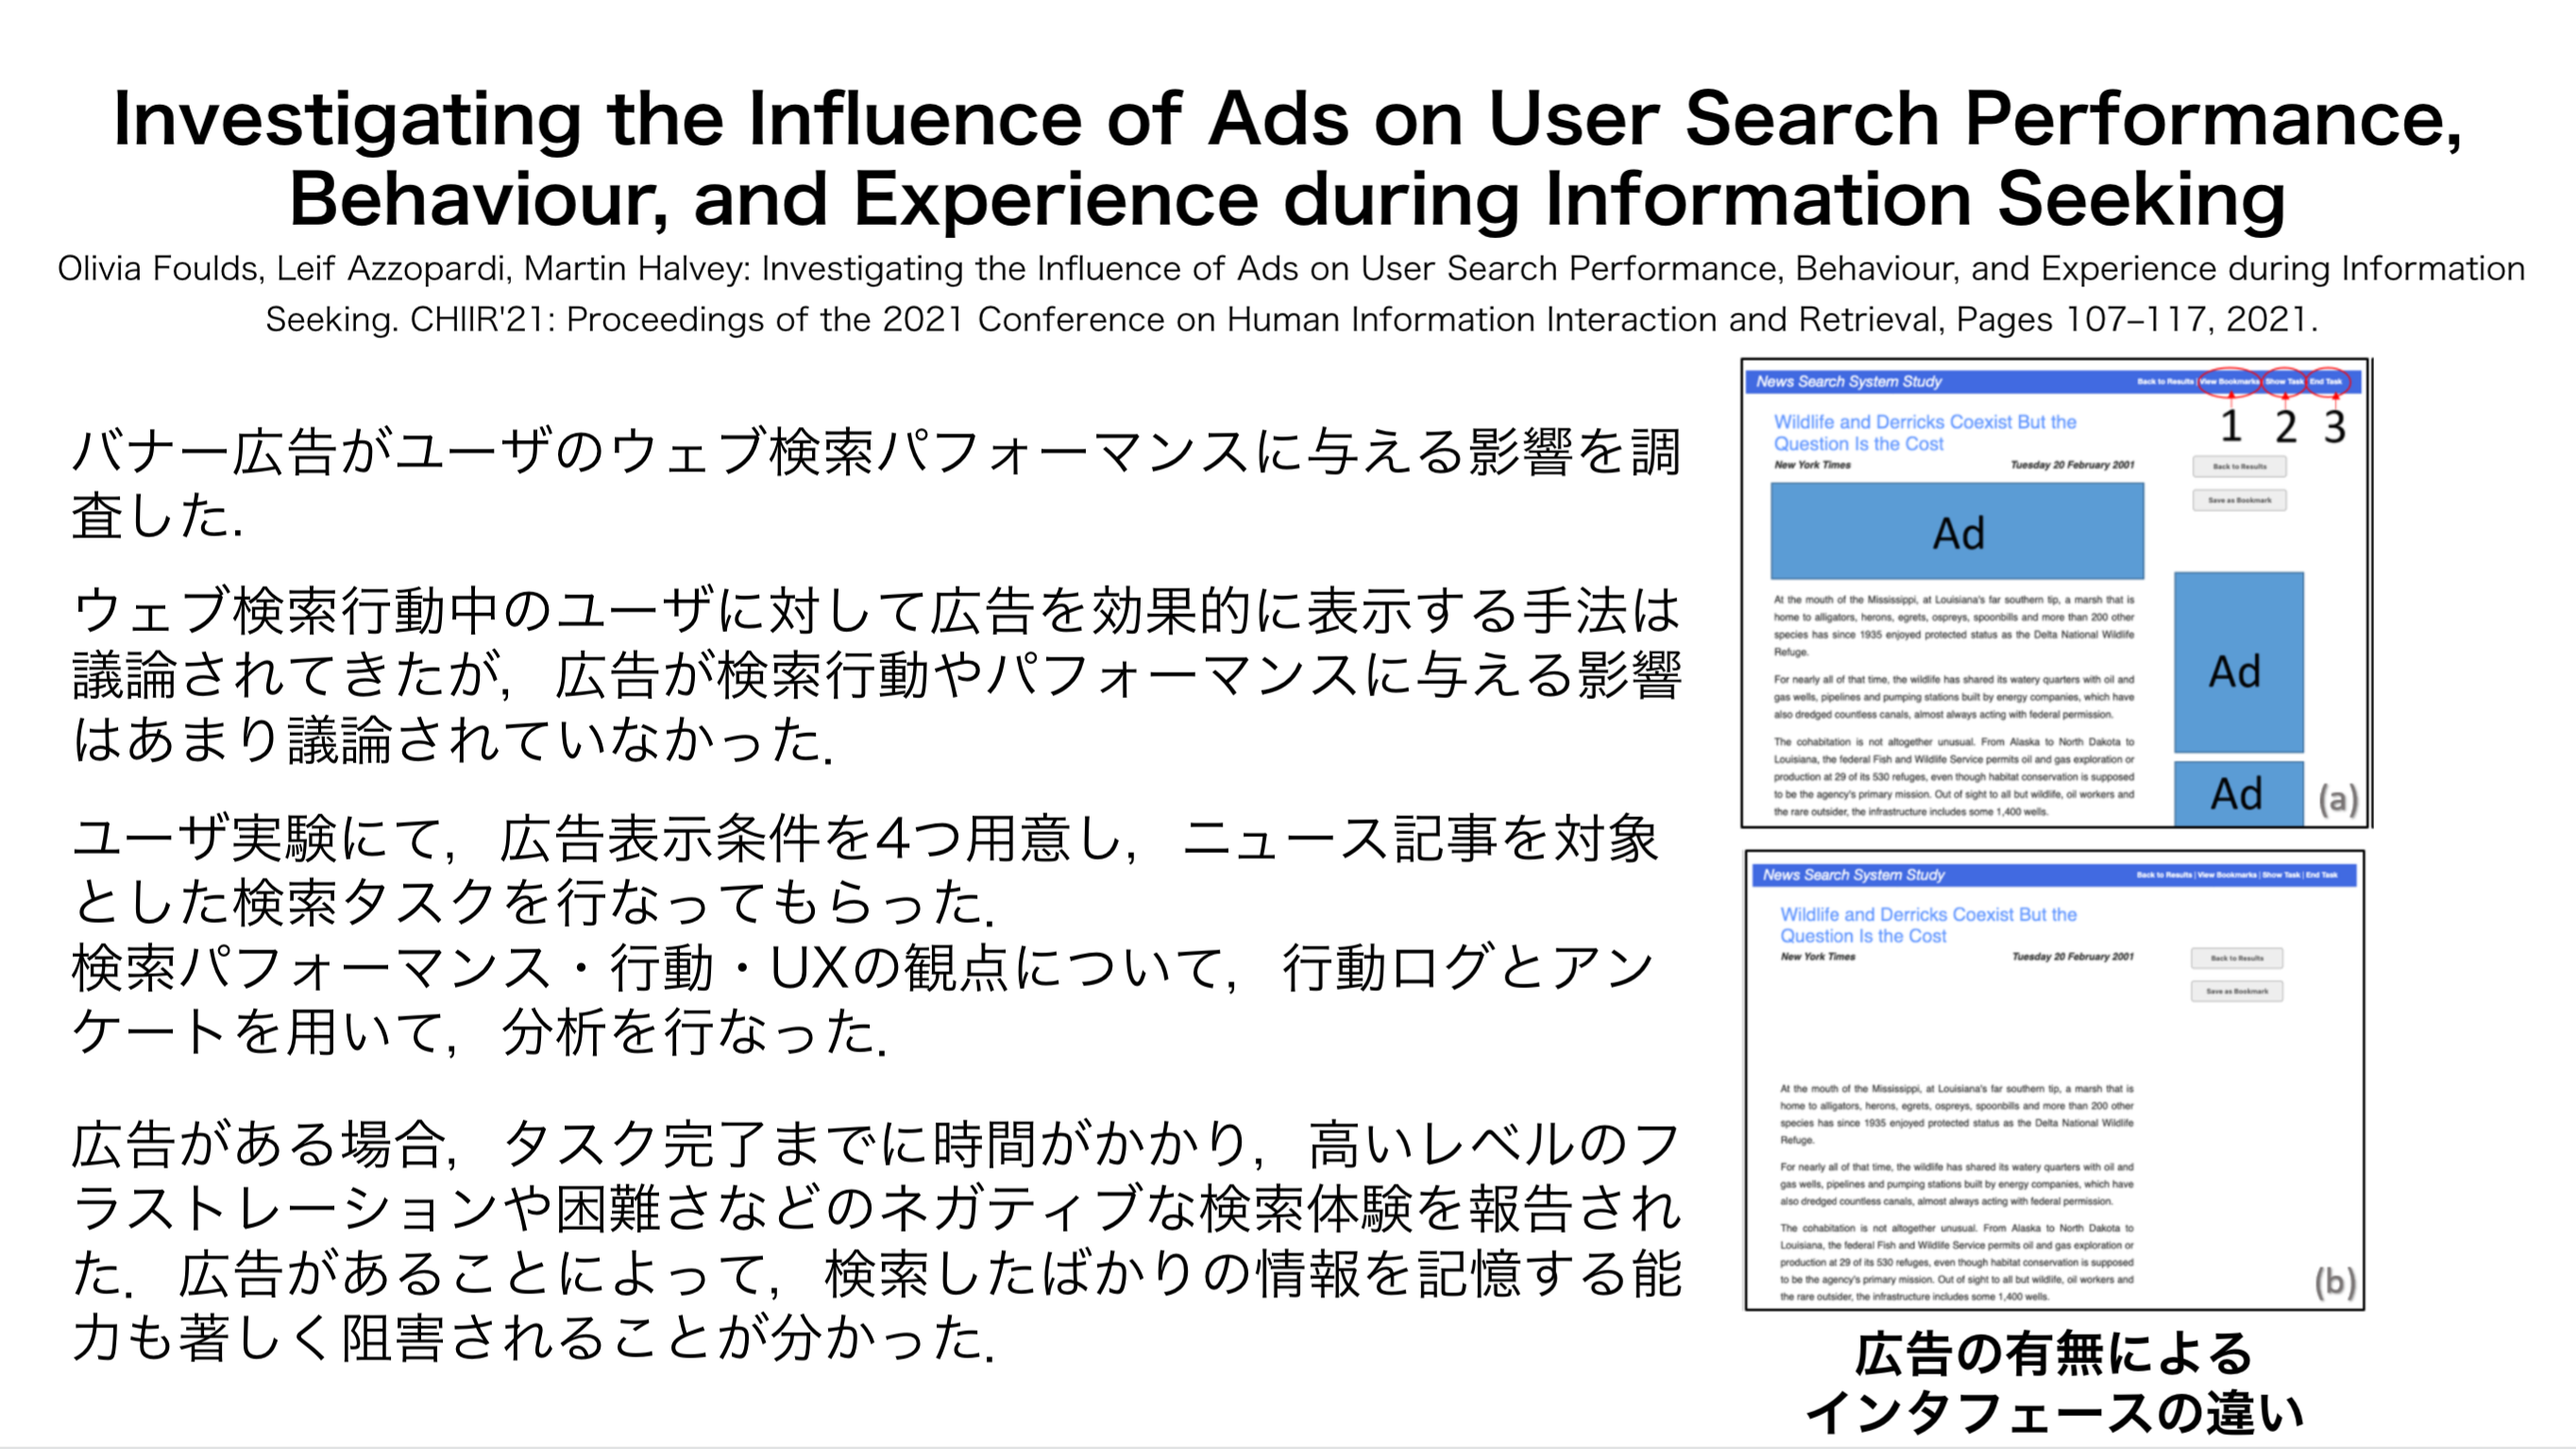 Investigating the Influence of Ads on User Search Performance, Behaviour, and Experience during Information Seekingの画像